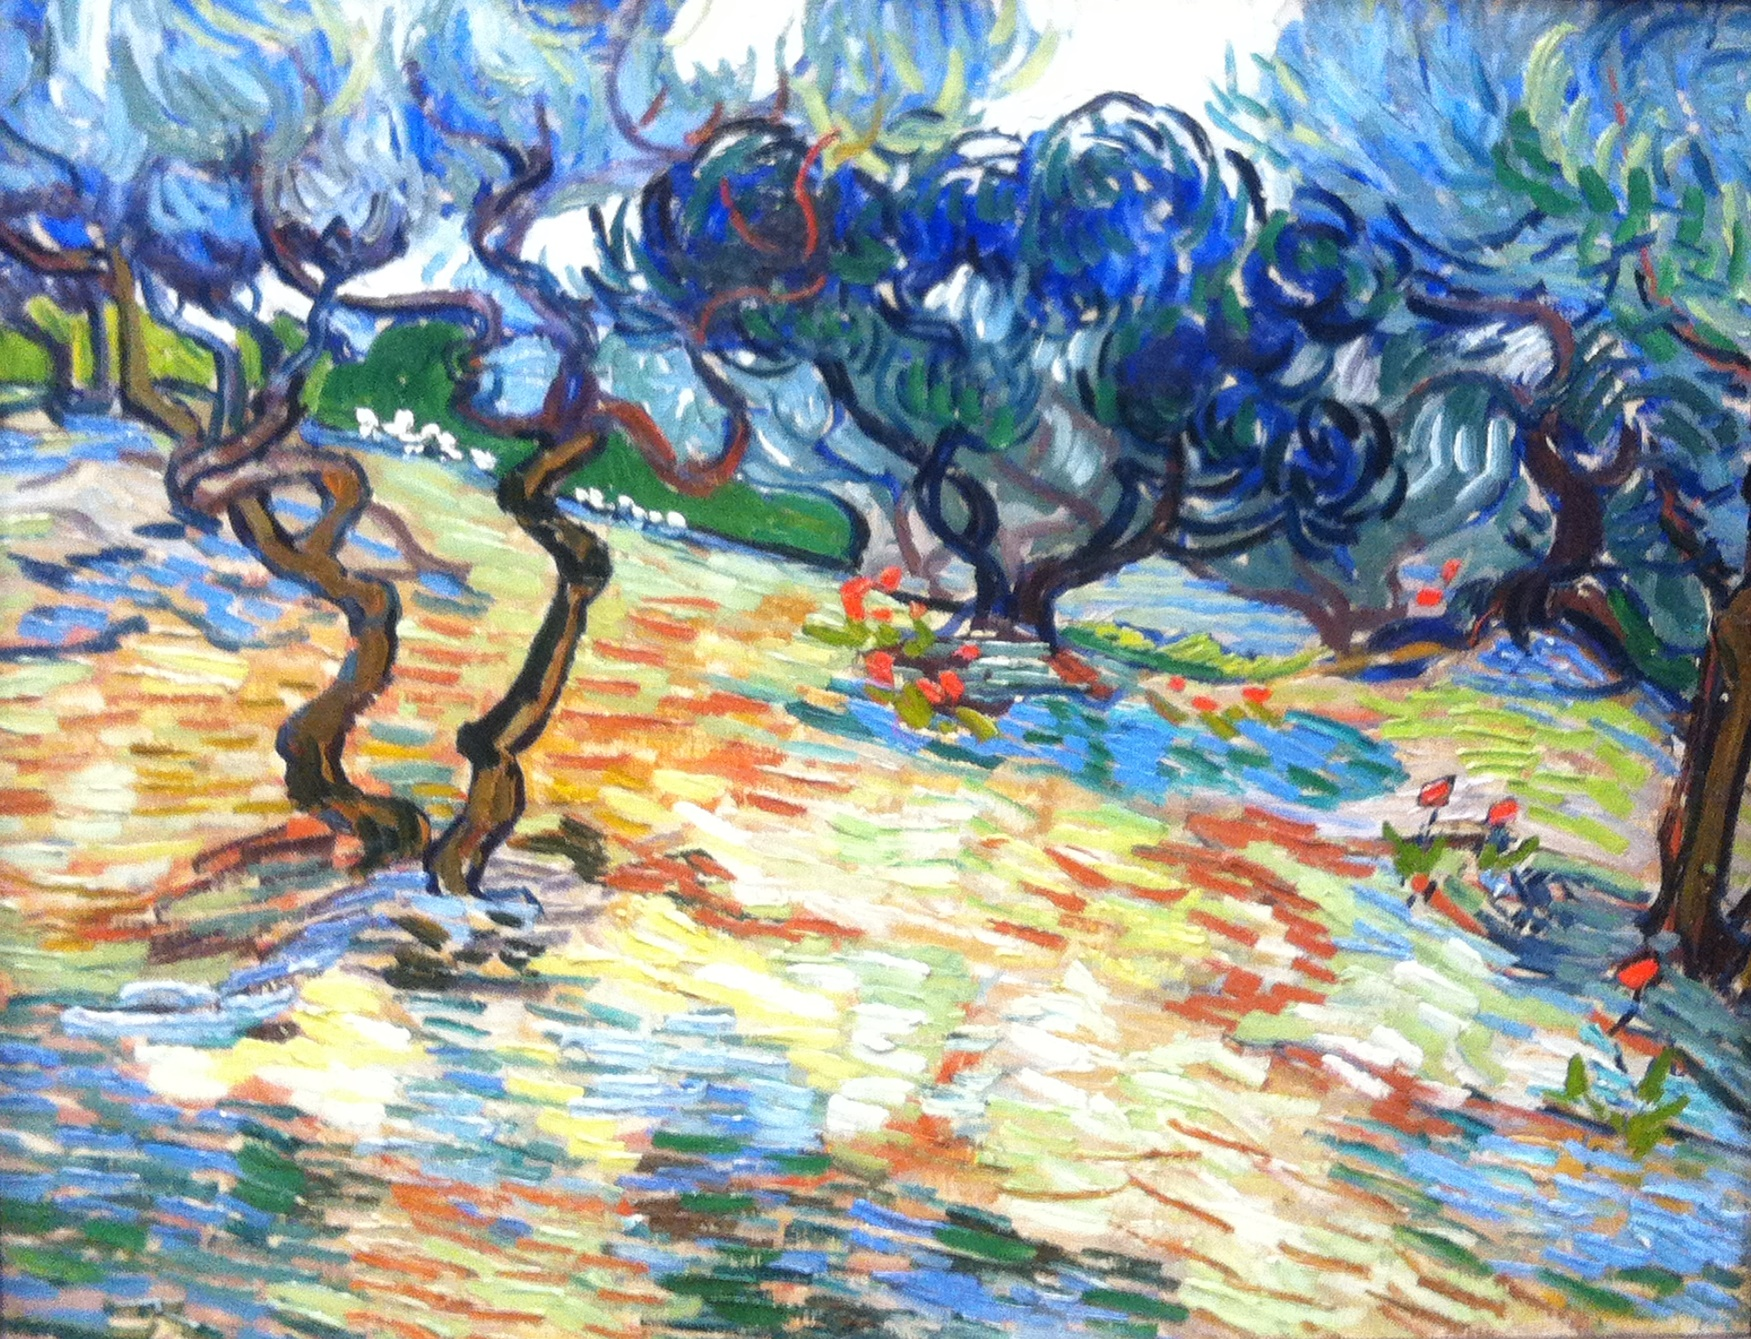 vincent van goghs the olive trees Vincent van gogh painted at least 15 paintings of olive trees, mostly in saint-rémy-de-provence in 1889 at his own request, he lived at an asylum there from may 1889 through may 1890 painting the gardens of the asylum and, when he had permission to venture outside its walls, nearby olive trees, cypresses and wheat fields.